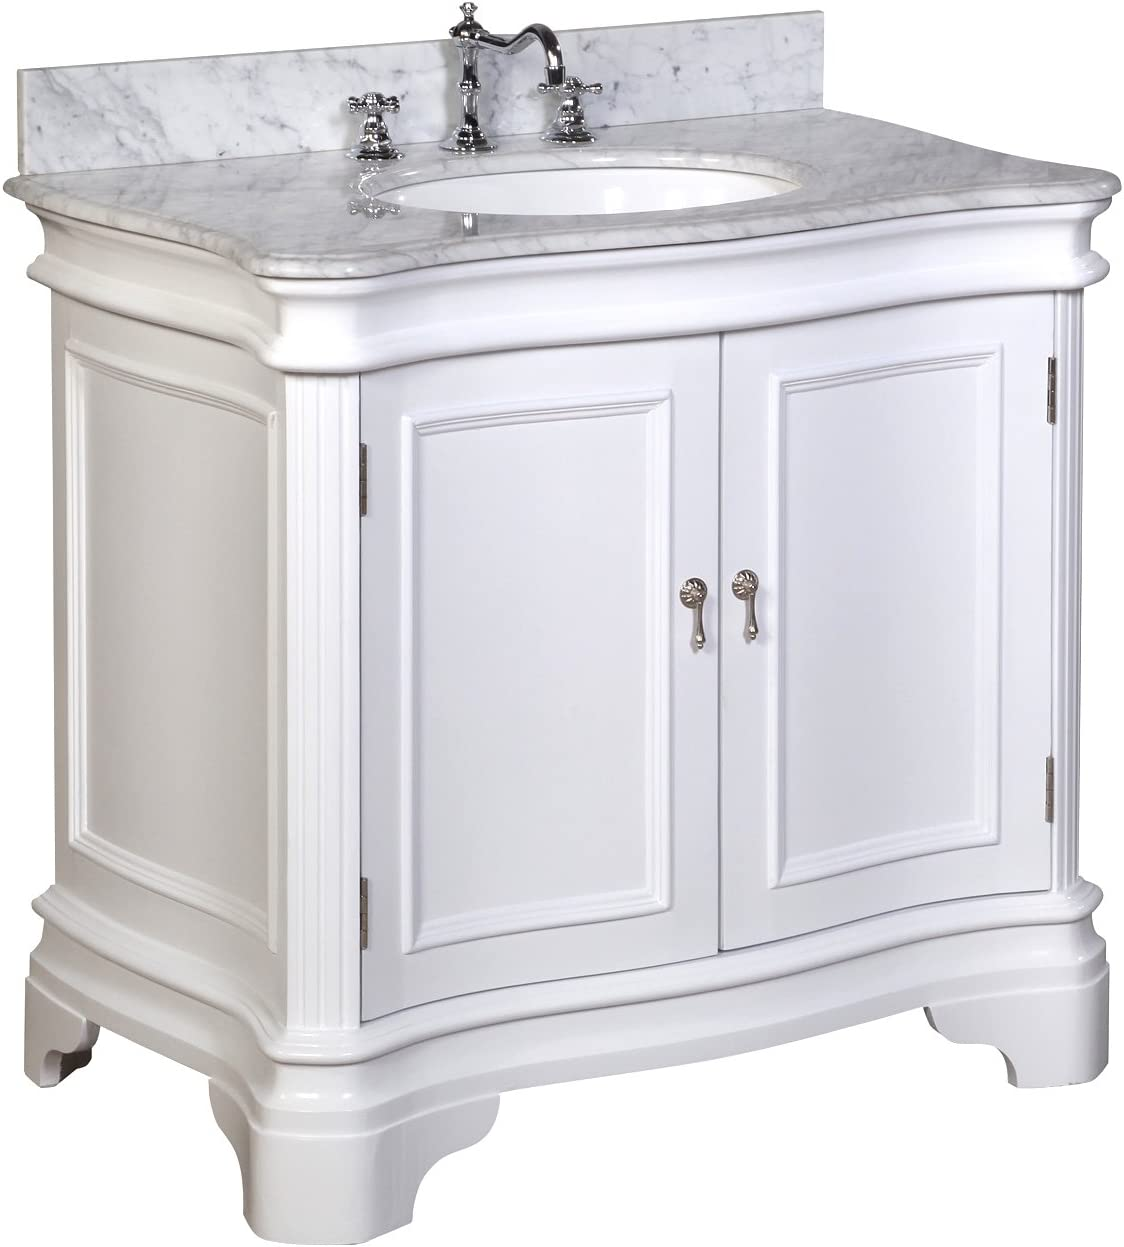 Katherine 36-inch Bathroom Vanity Carrara White Includes White Cabinet with Authentic Italian Carrara Marble Countertop and White Ceramic Sink